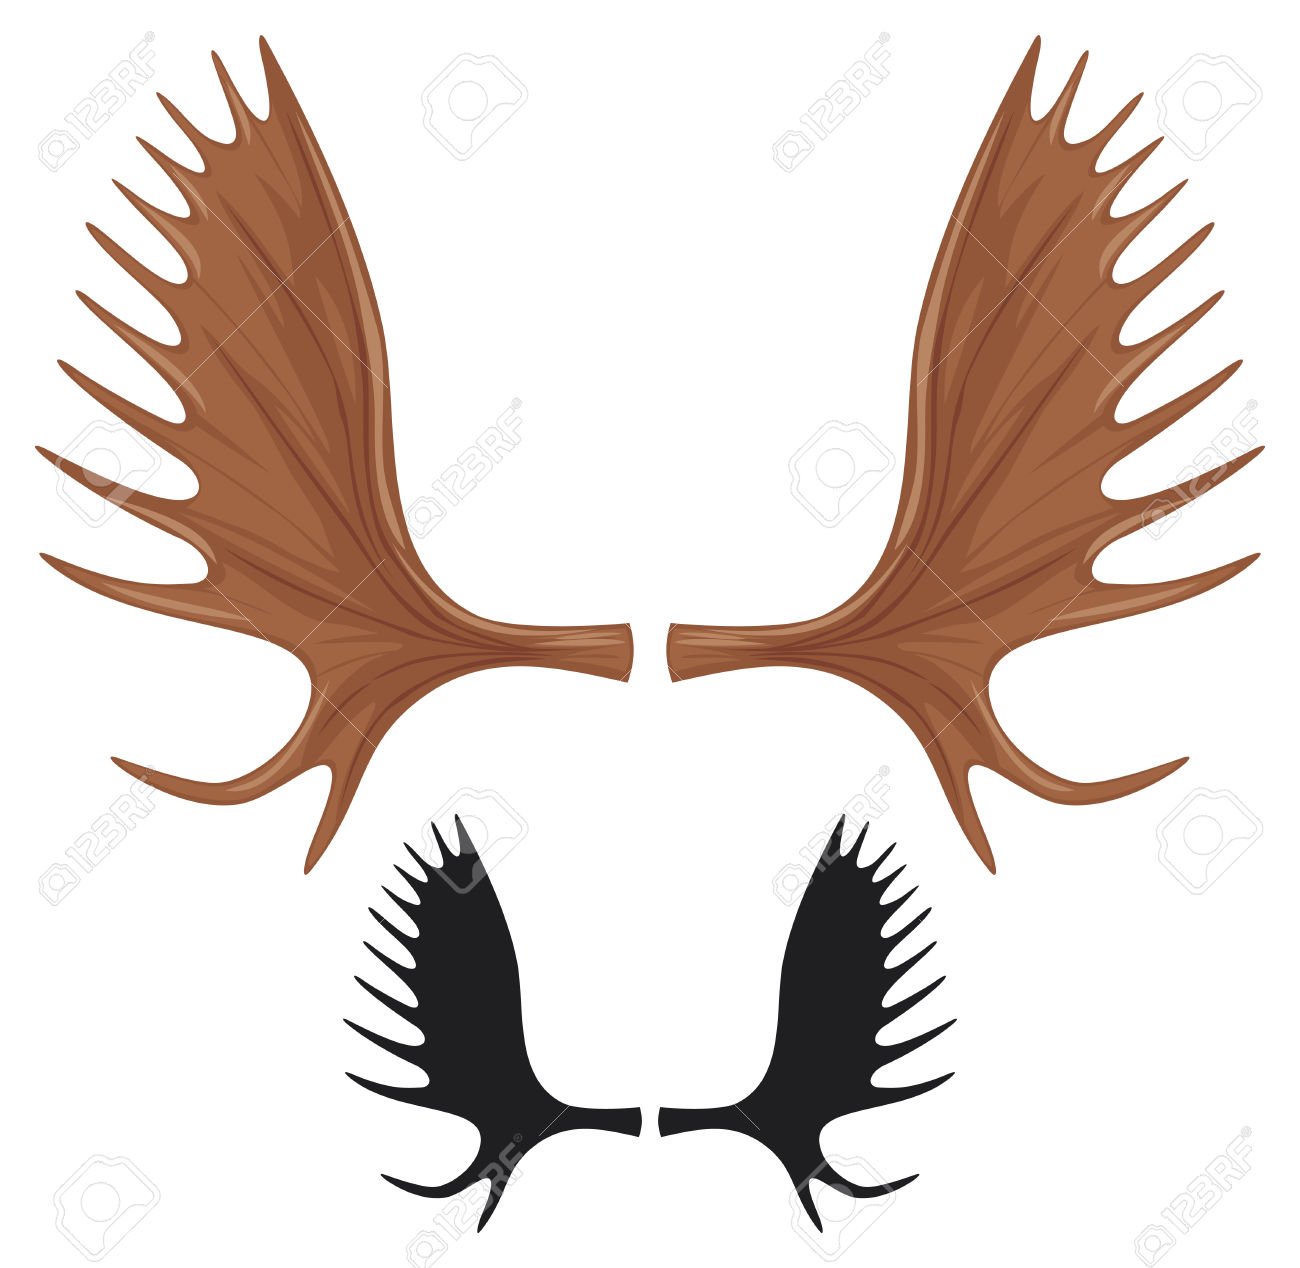 2,484 Moose Antlers Stock Vector Illustration And Royalty Free.